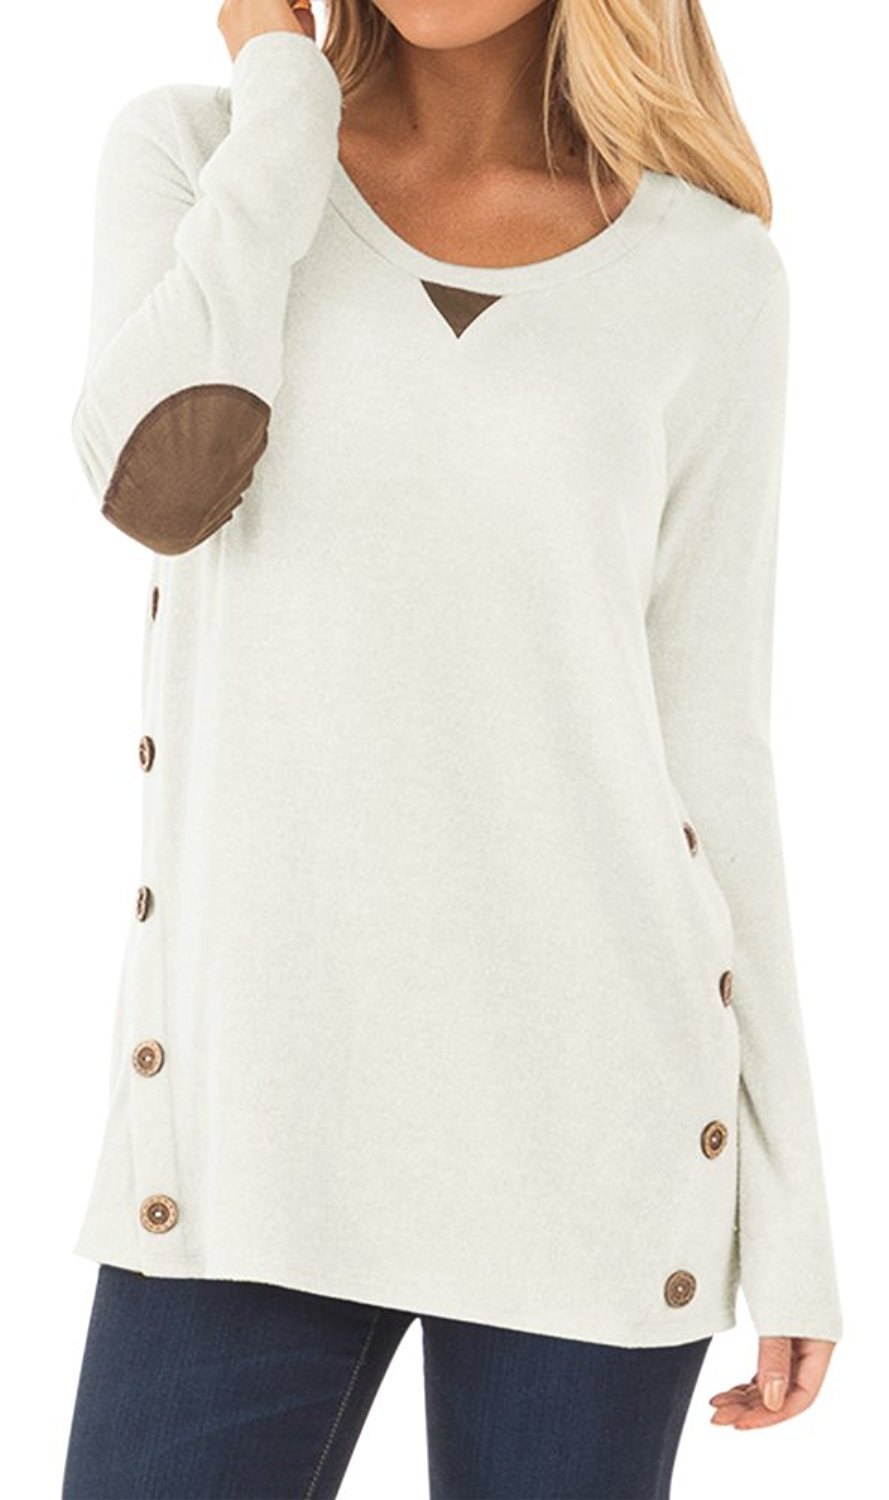 DEARCASE Women's Round Neck Tunic Soft Tops with Faux Suede and Button Blouses Tops White Small